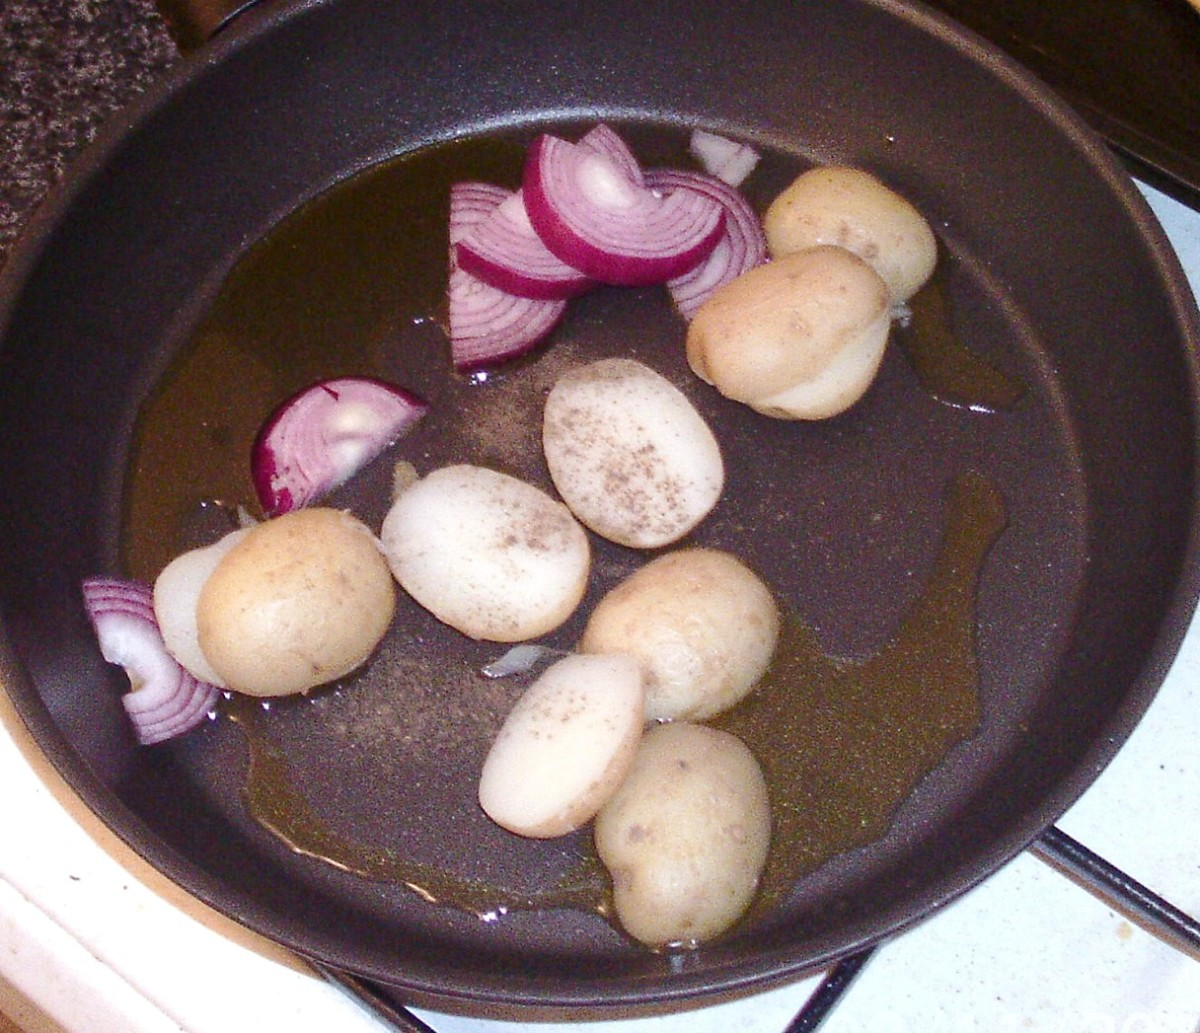 Potatoes and onions are added to hot pan and seasoned